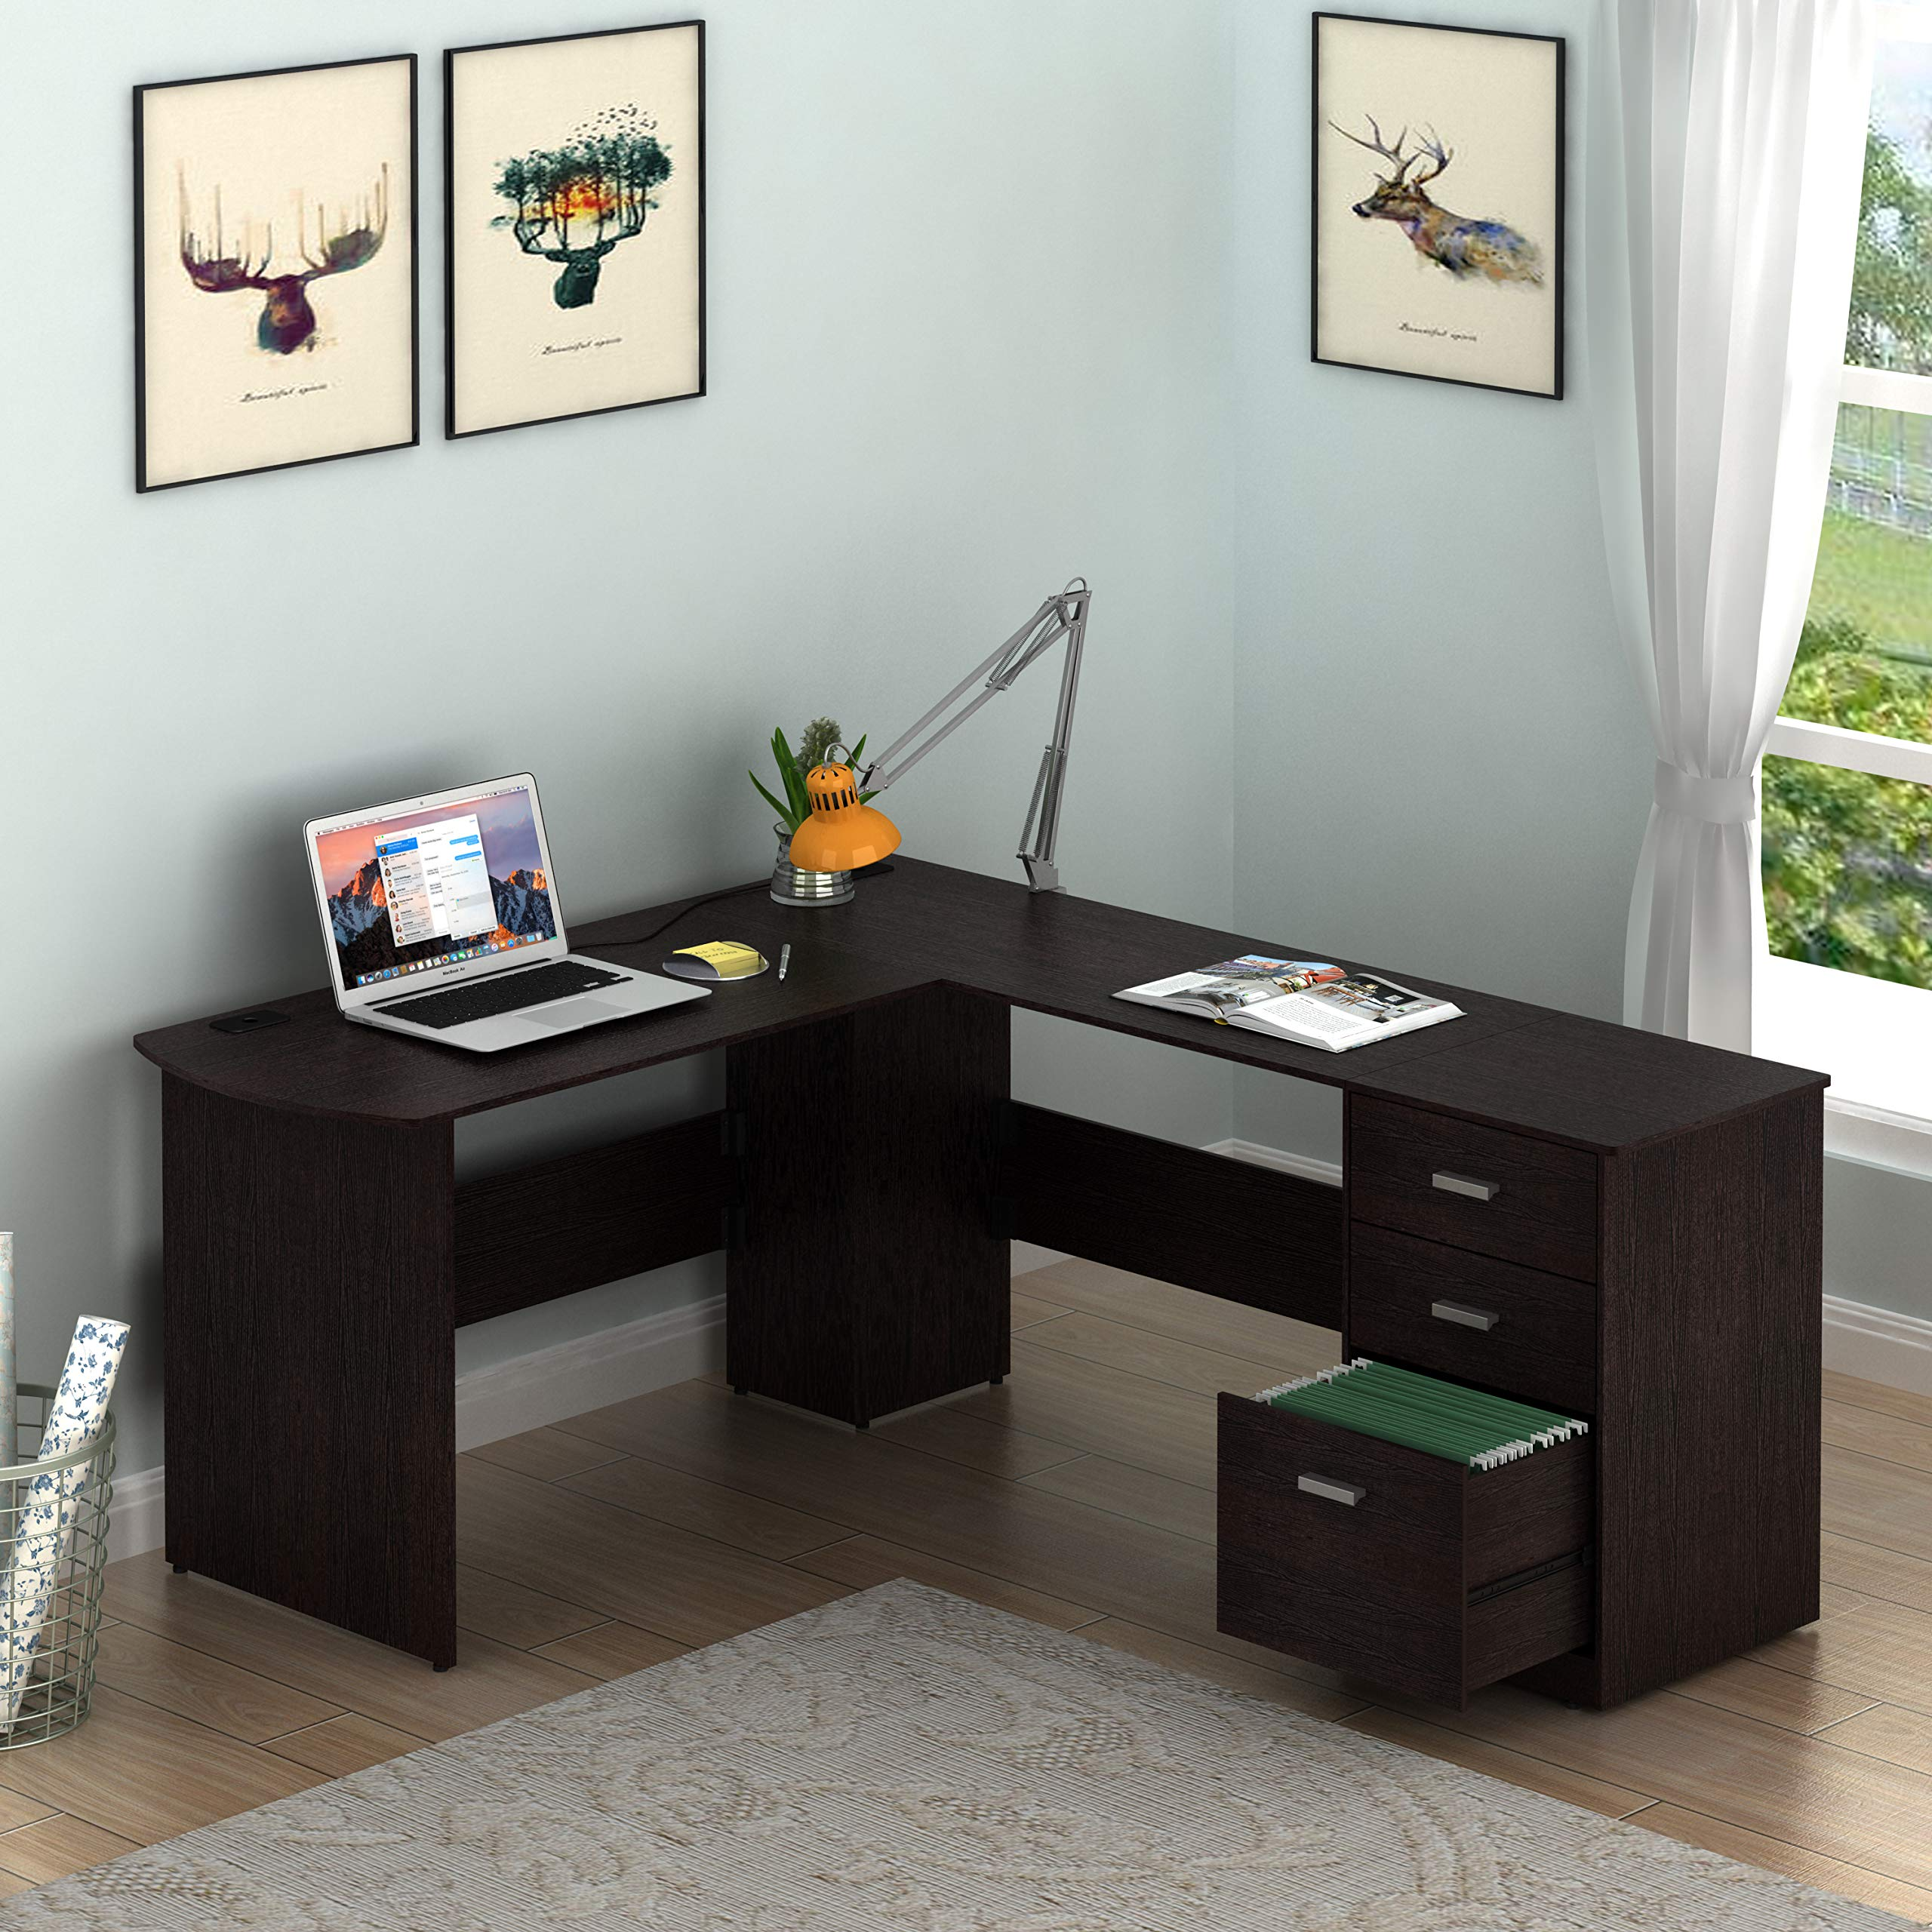 SHW L-Shaped Home Office Wood Corner Desk with 3 Drawers, Espresso by SHW